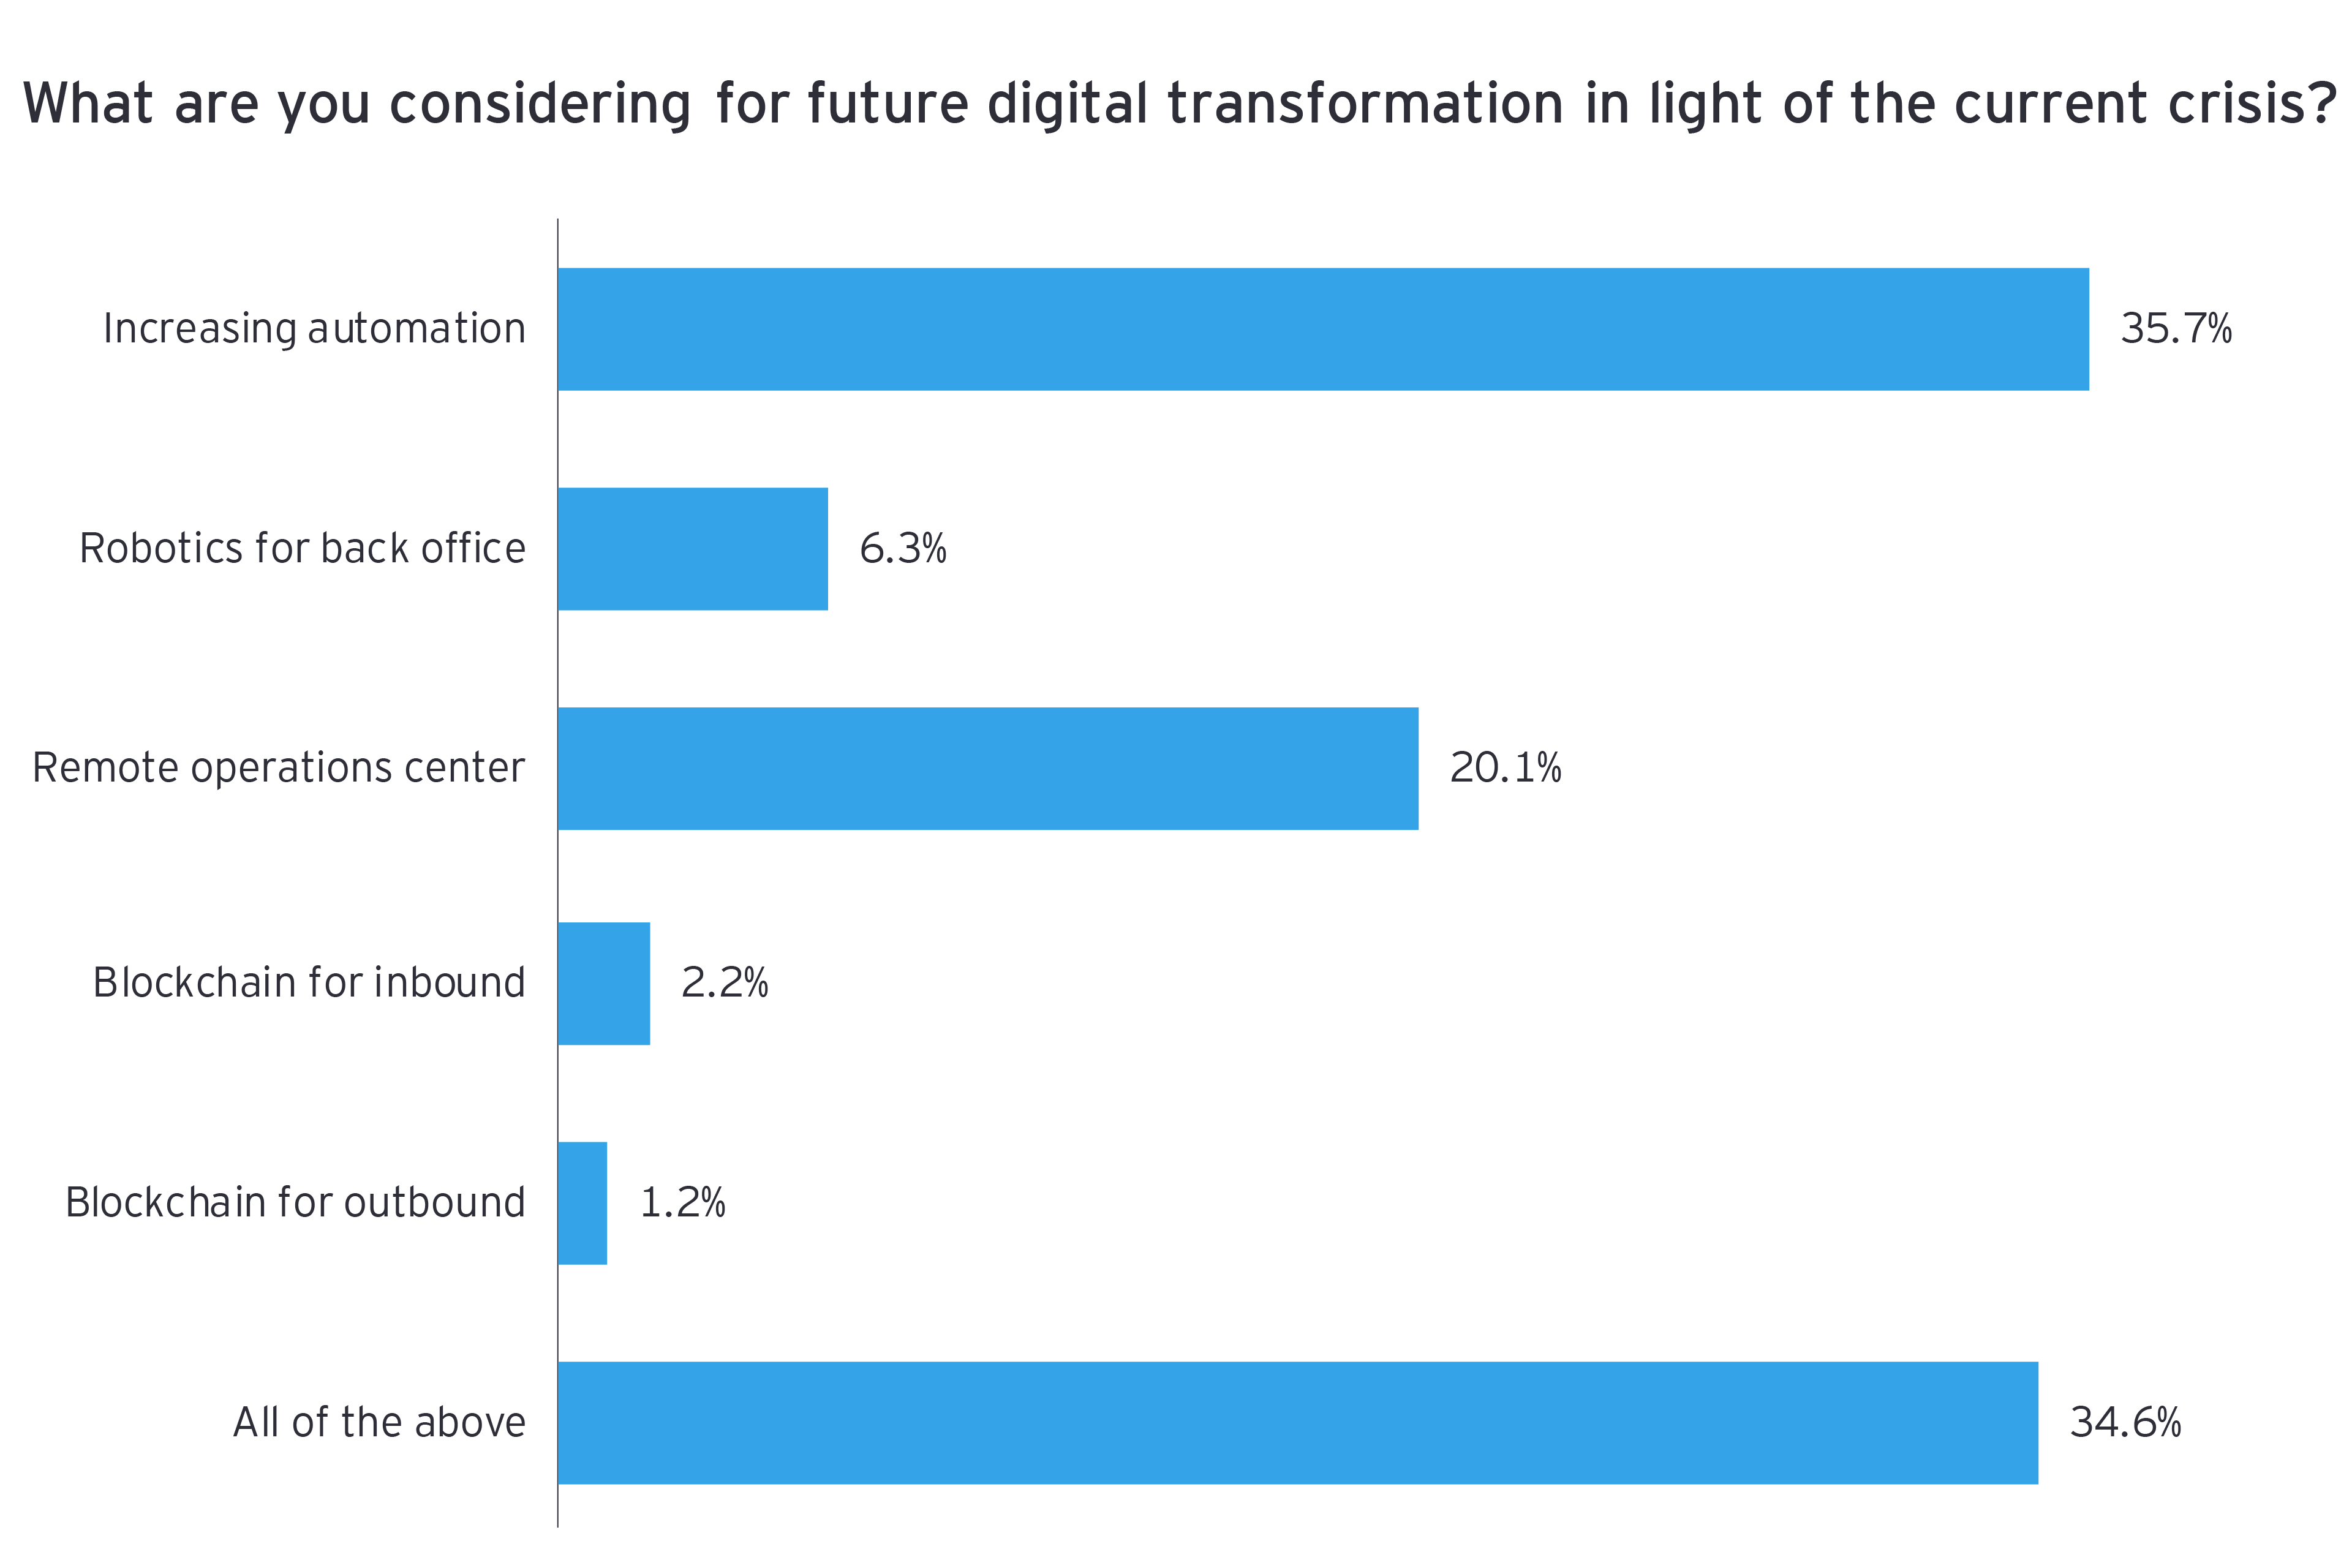 What are you considering for future digital transformation in light of the current crisis